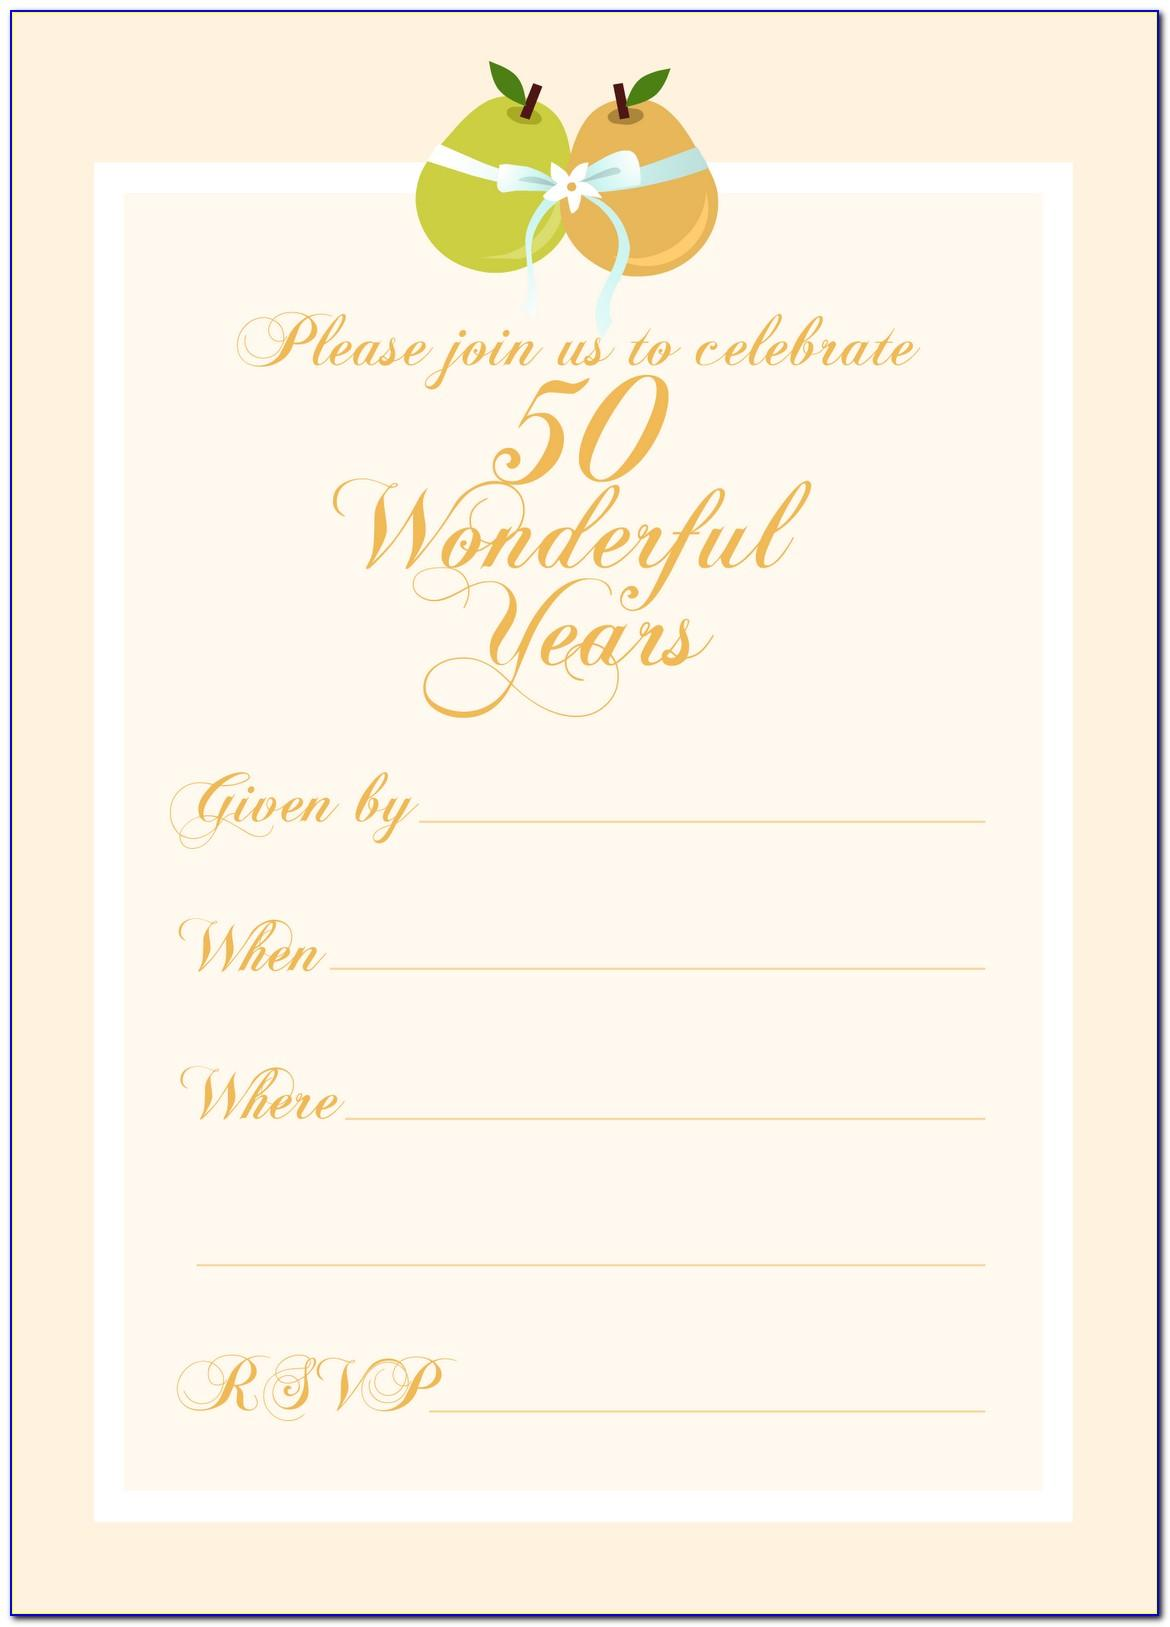 50th Wedding Anniversary Invitation Free Template